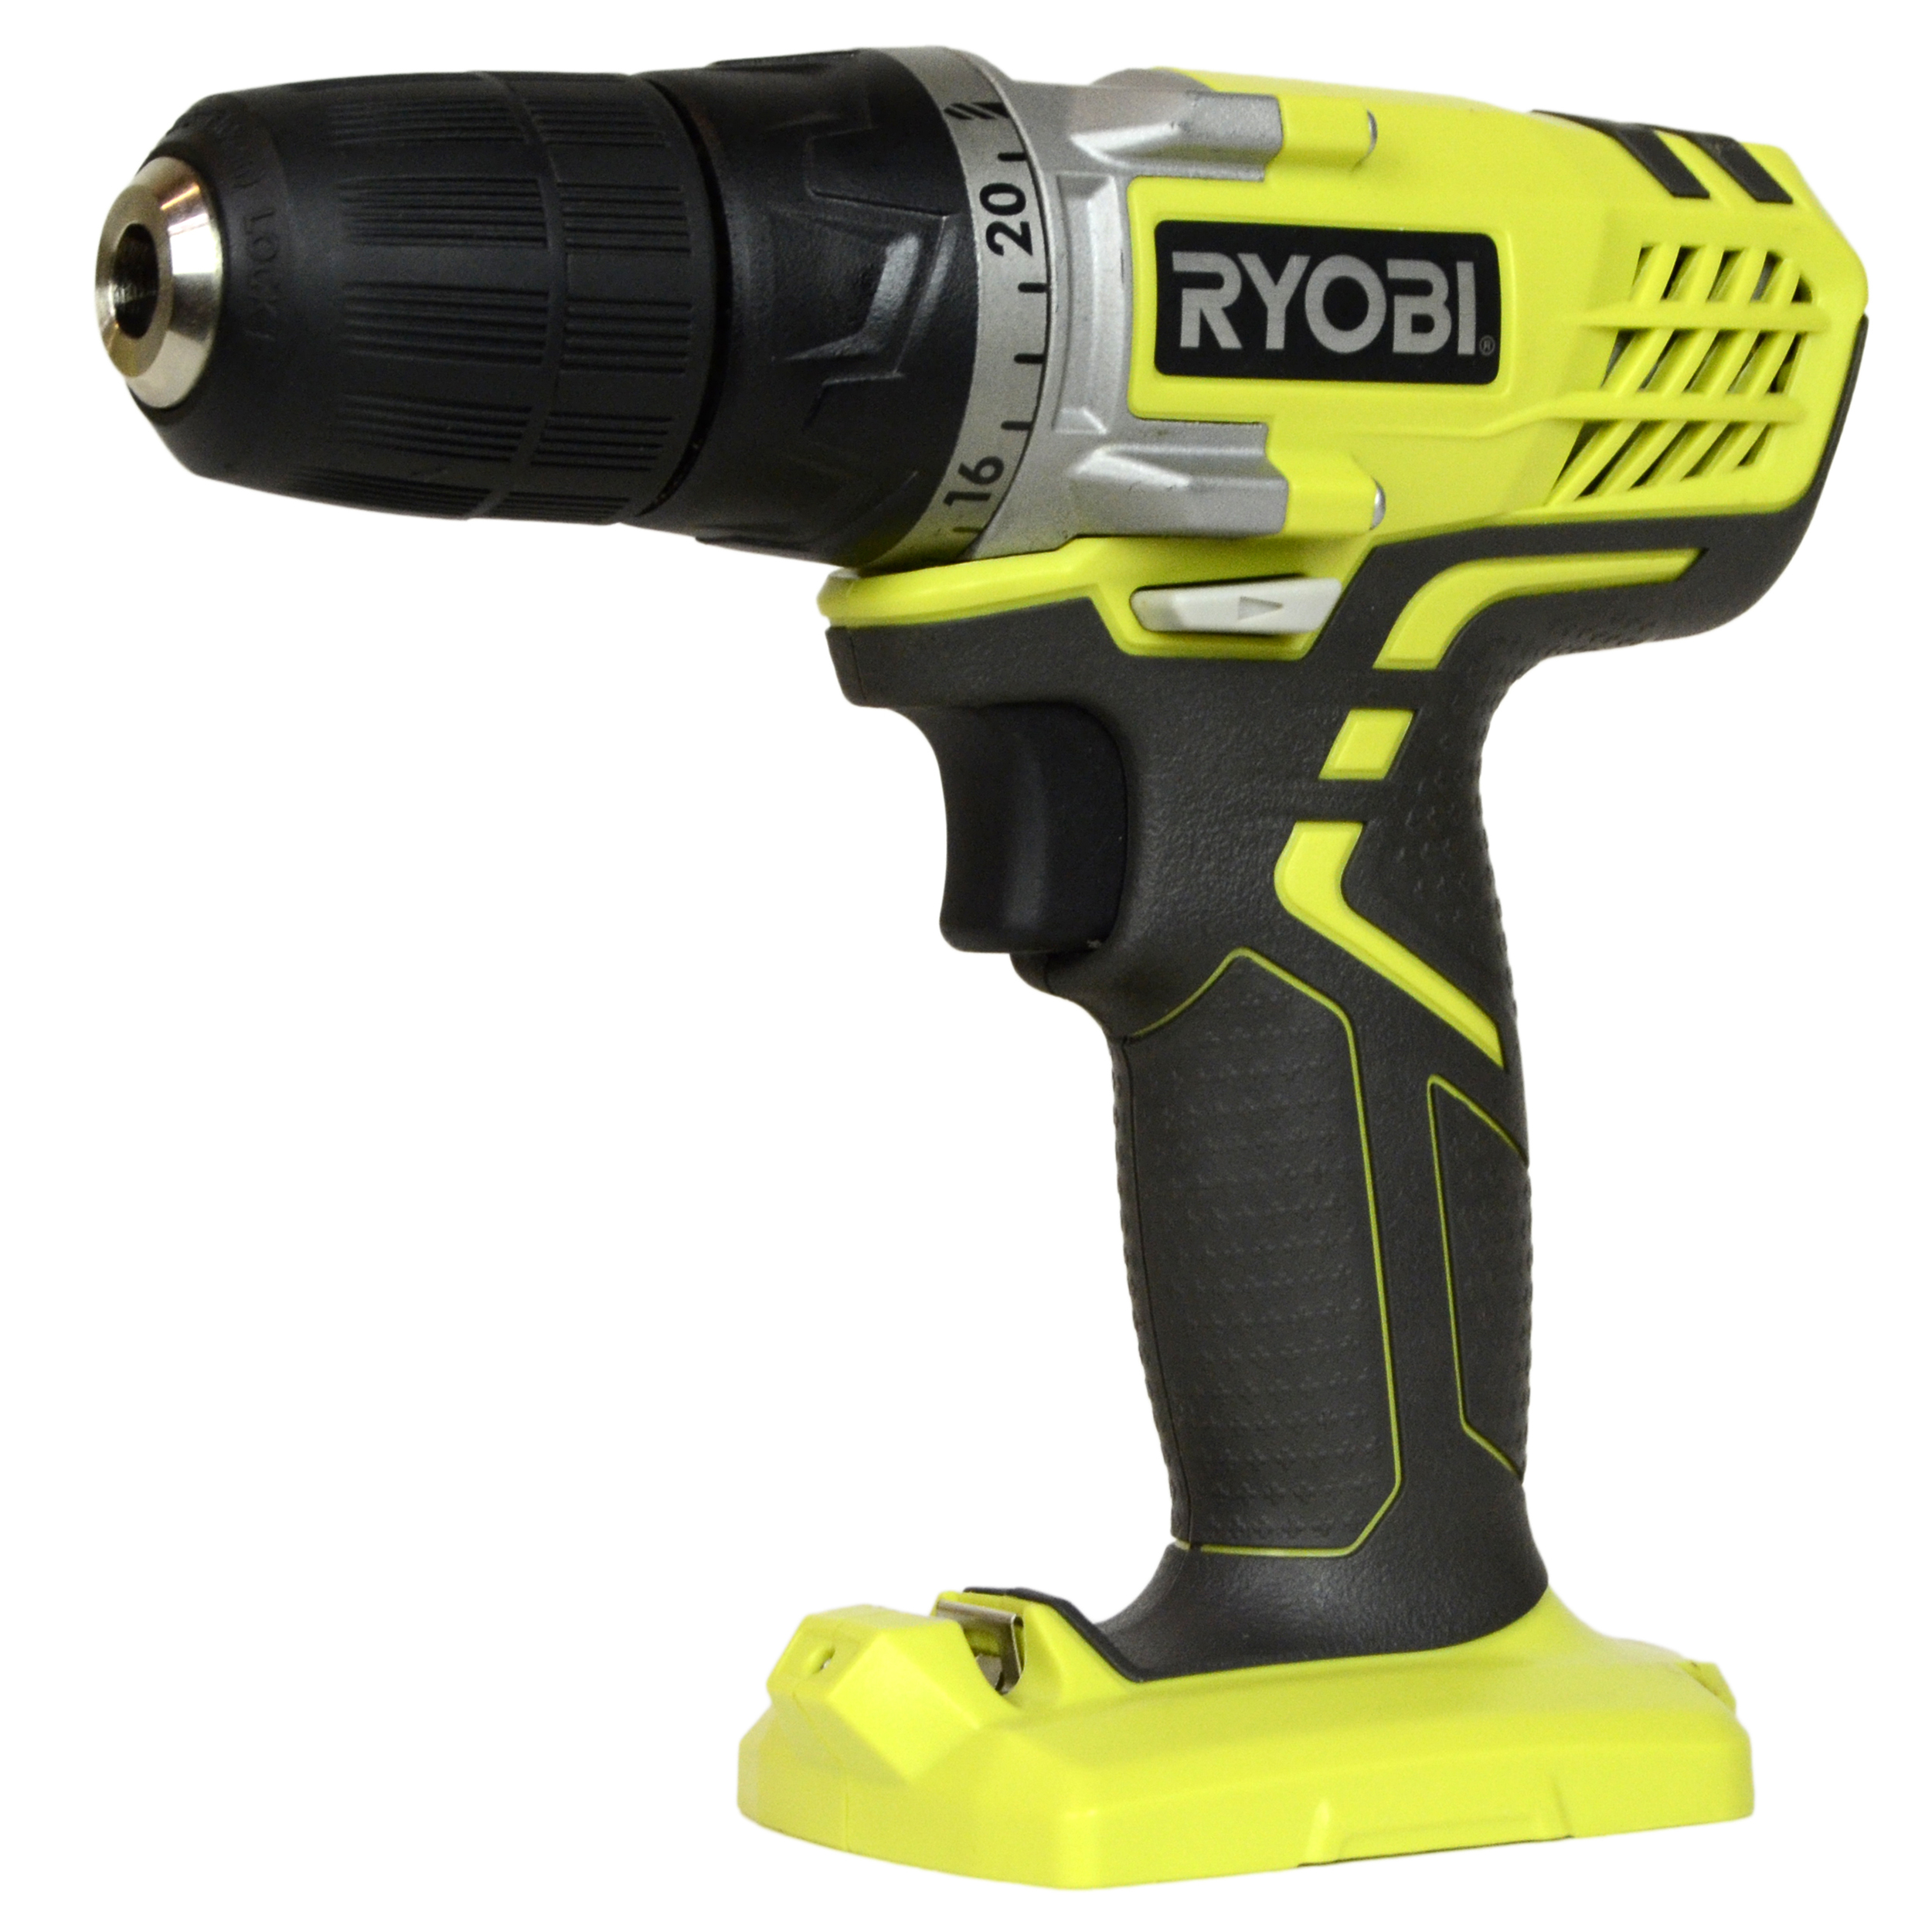 "Ryobi Tools Reconditioned HJP003 12V 3/8"" Lithium Ion Cordless Drill Driver, Tool Only"